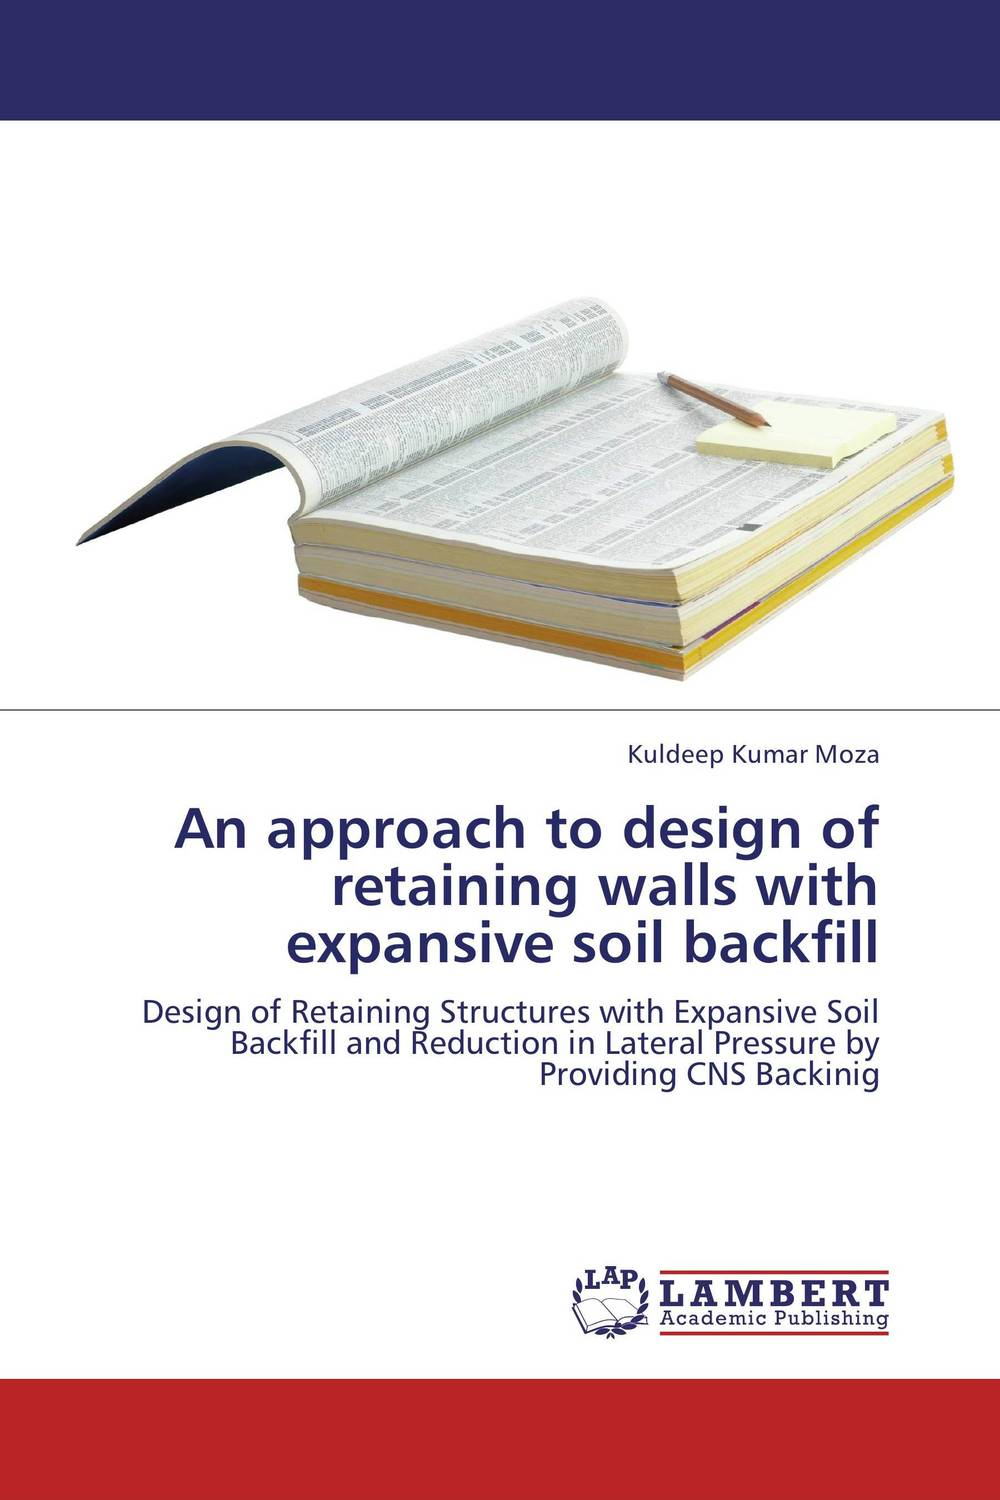 An approach to design of retaining walls with expansive soil backfill nasir mohamad muhd ramdhan abd aziz and rusli ismail nordipine is comparable to amlodipine in reducing blood pressure